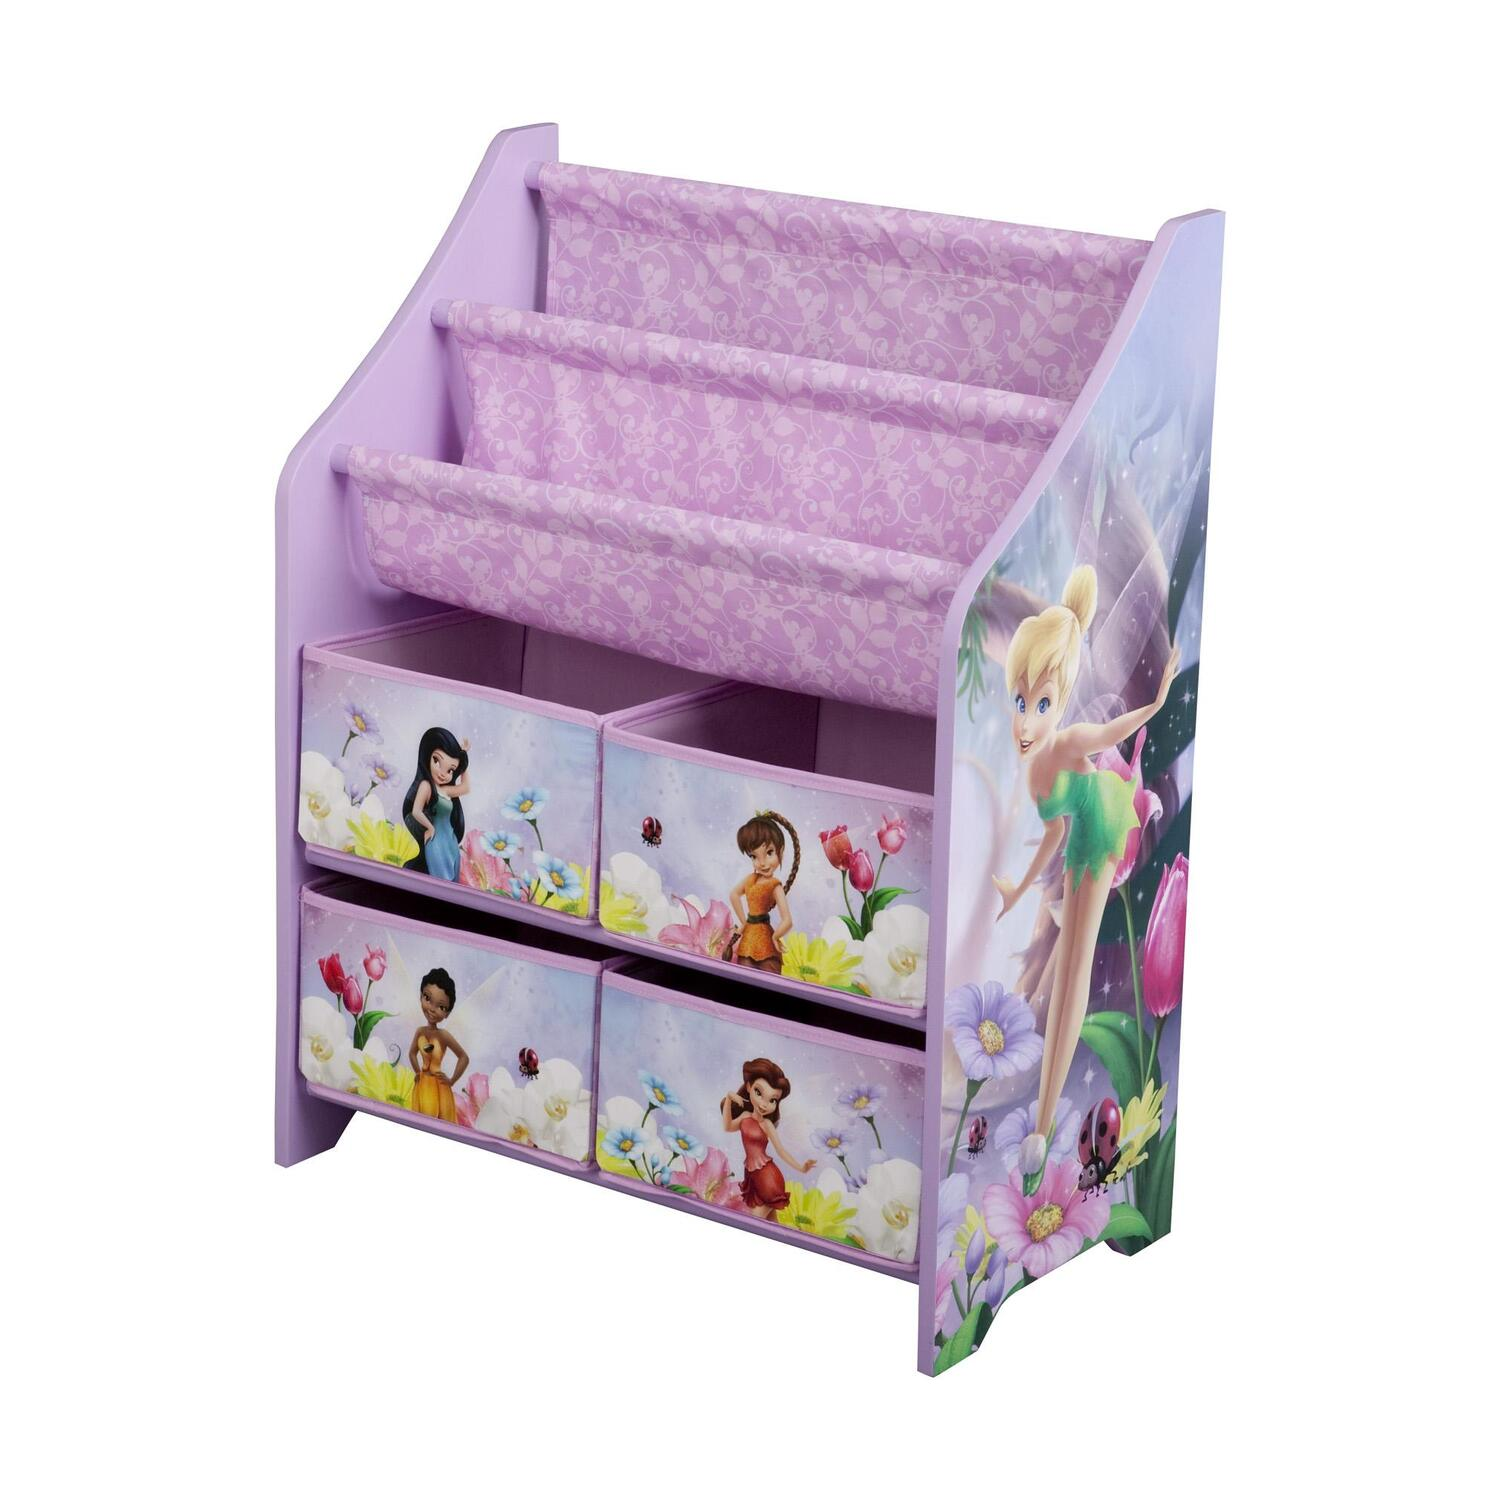 Disney fairies book toy organizer by oj commerce for Toy and book storage